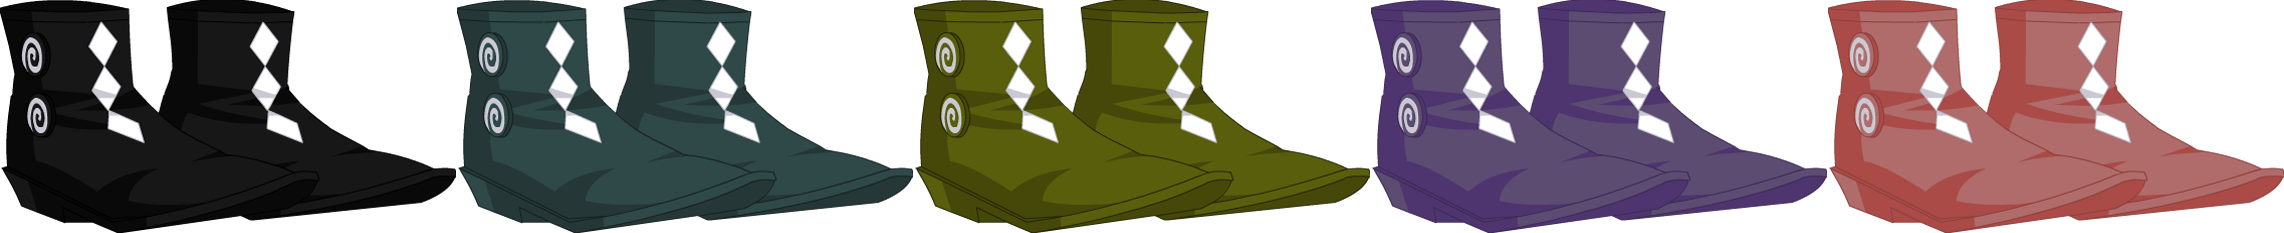 Topsy-Turvy Boots - Male